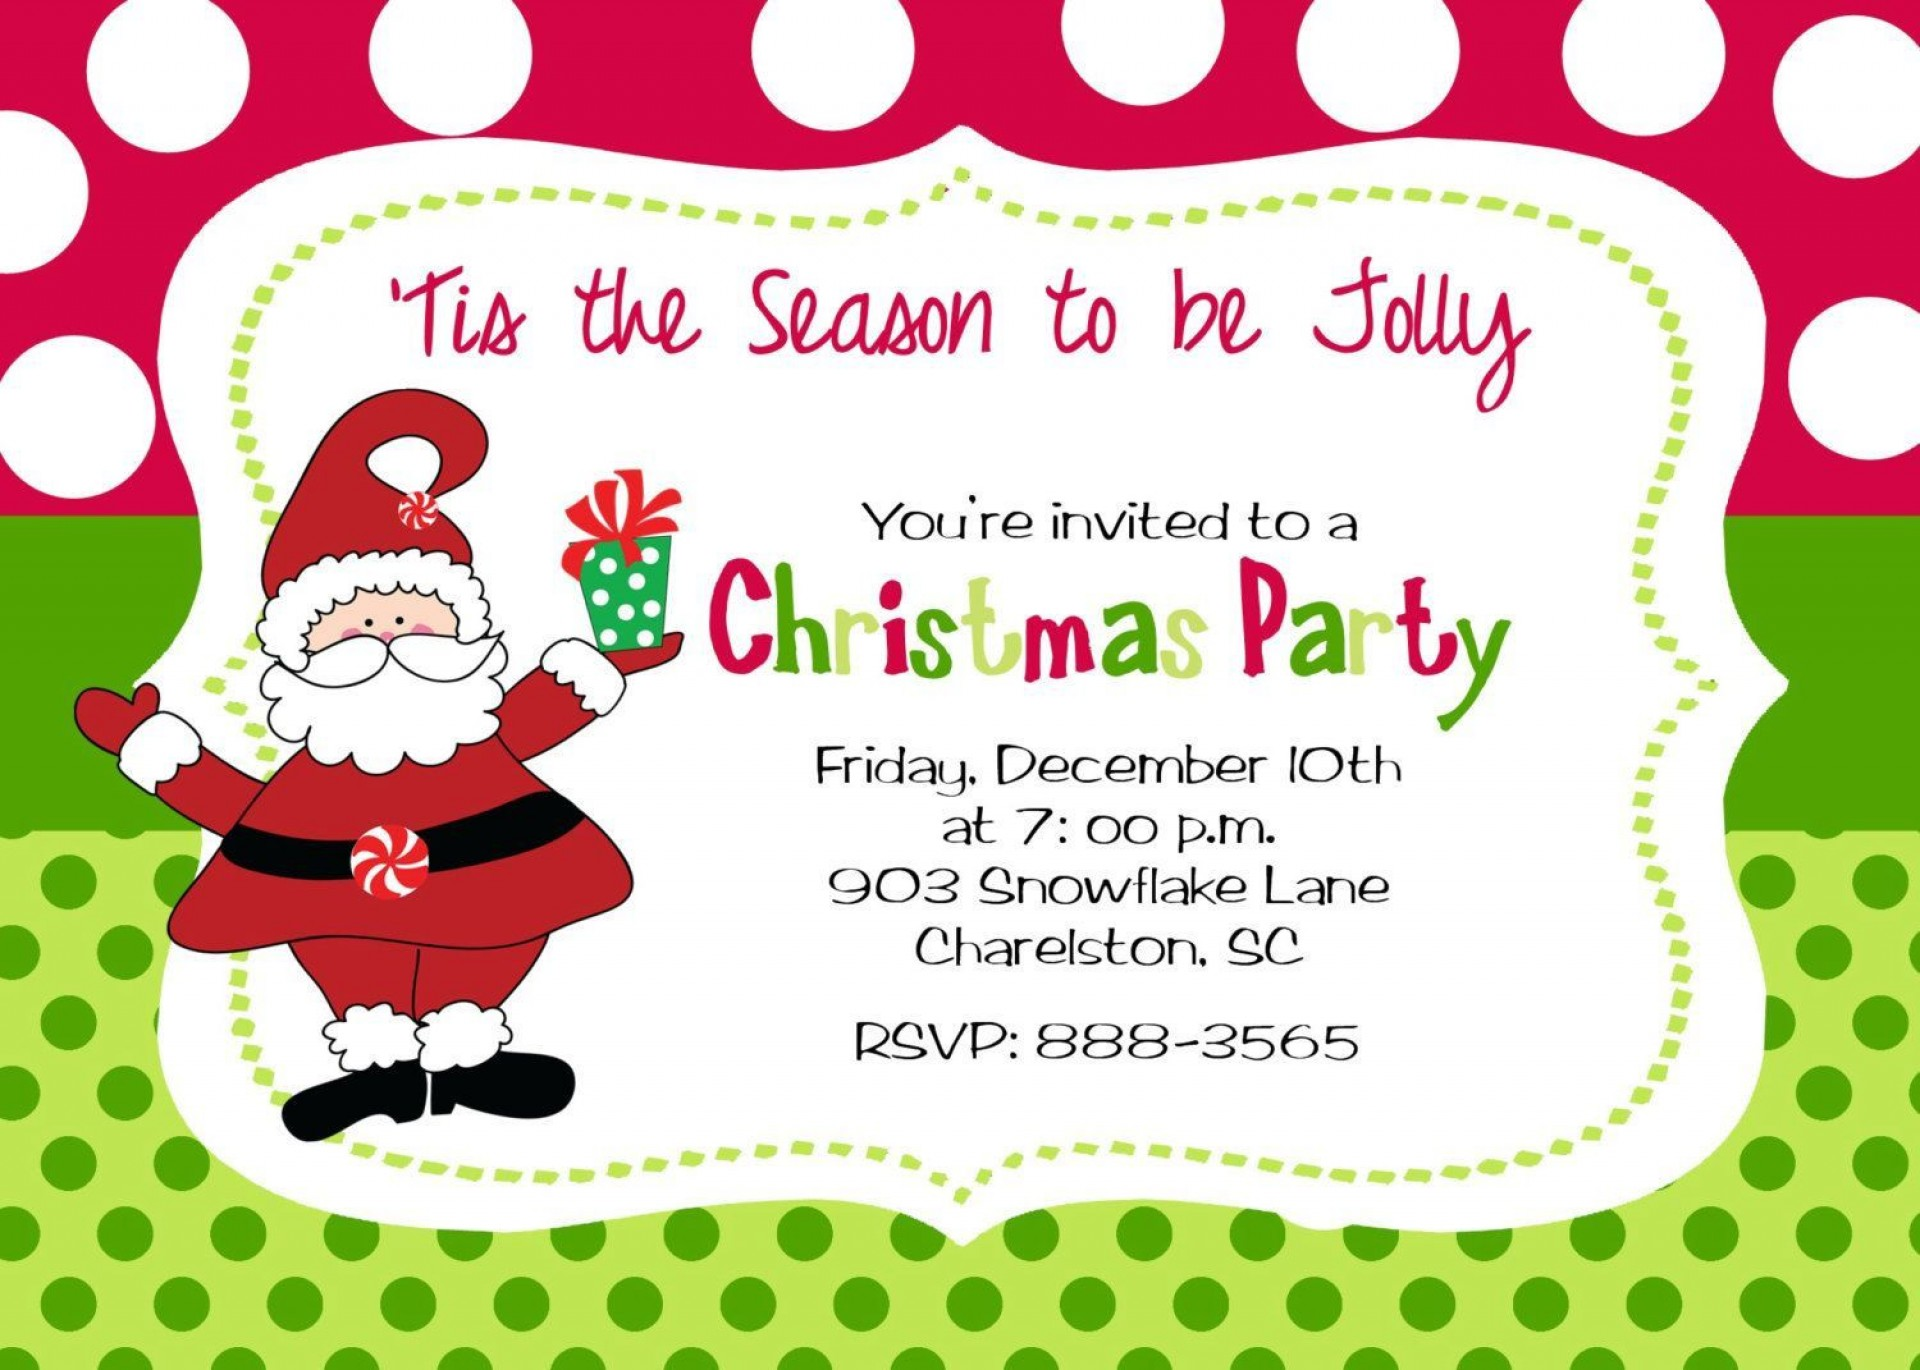 010 Awful Christma Party Invite Template Word High Resolution  Holiday Free Invitation Wording Example1920